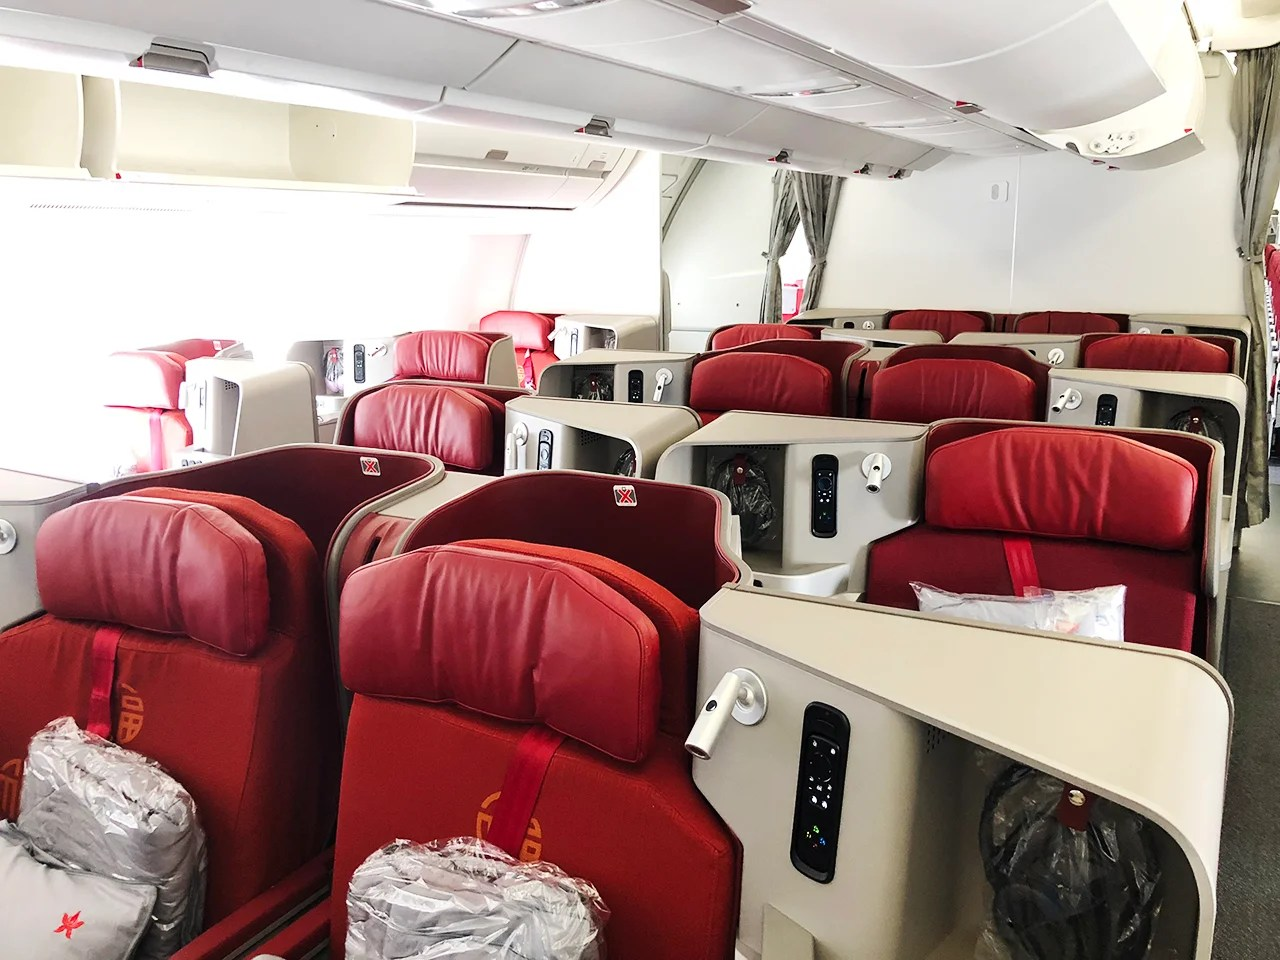 15 Hours in Lie-Flat Biz for Under $600: Flying Hong Kong Airlines' A350 From LAX to HKG